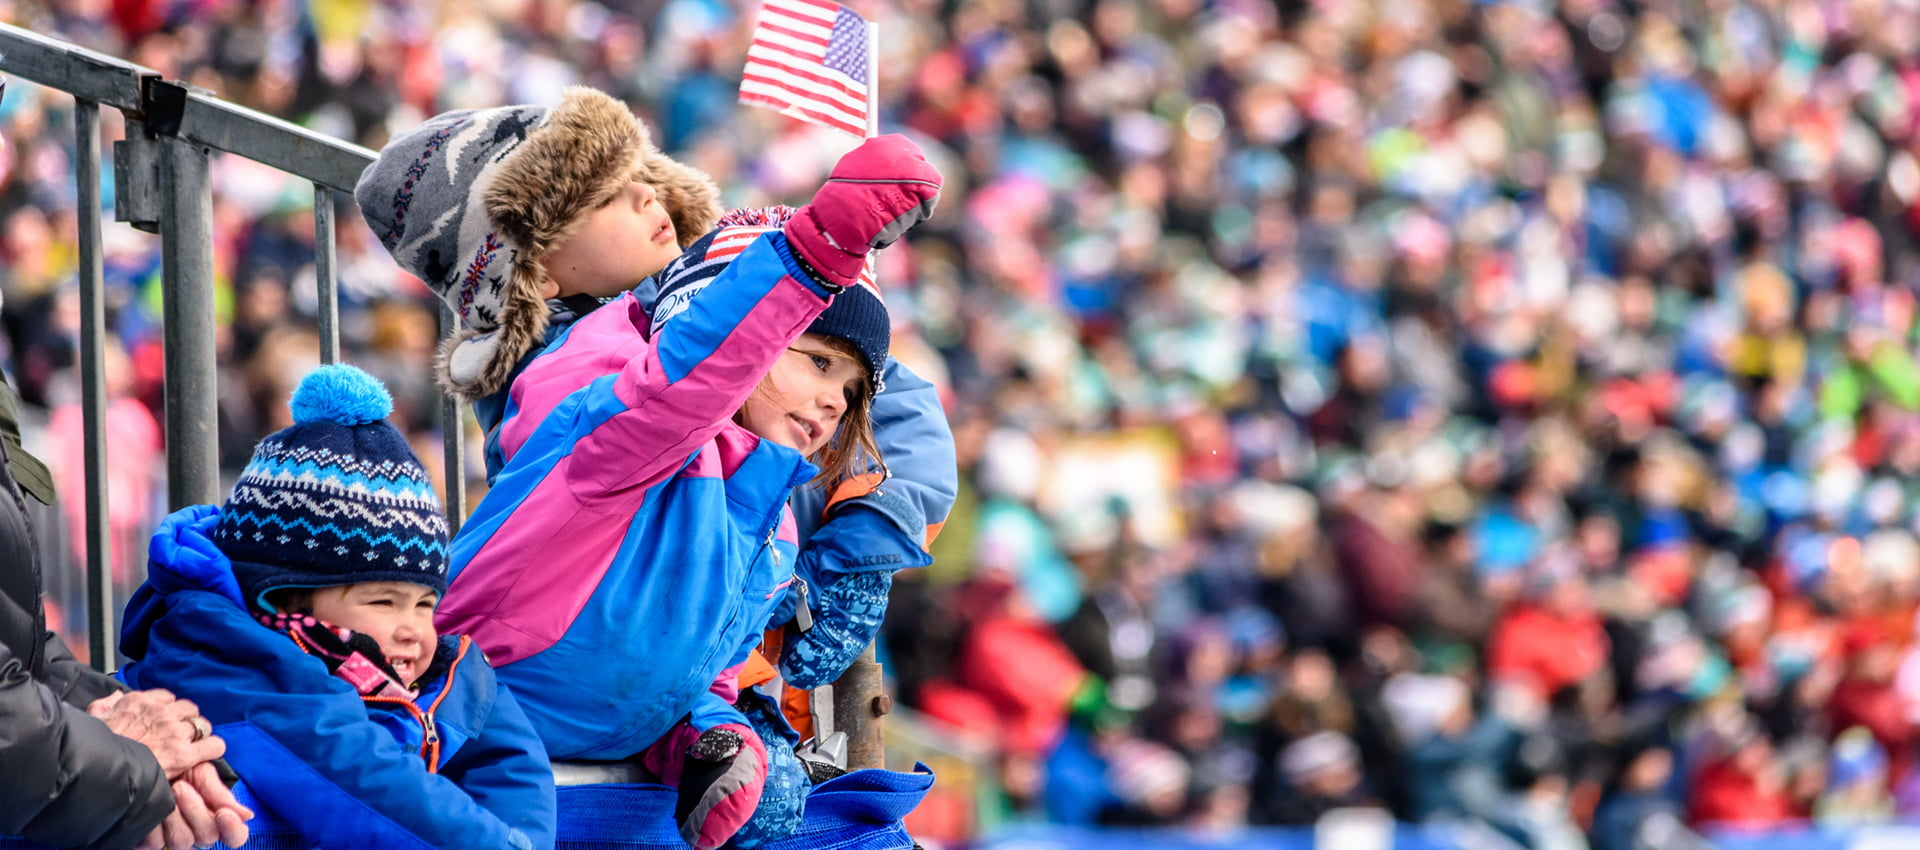 Children cheer on at the Killington World Cup. | Photo Courtesy of John Everett